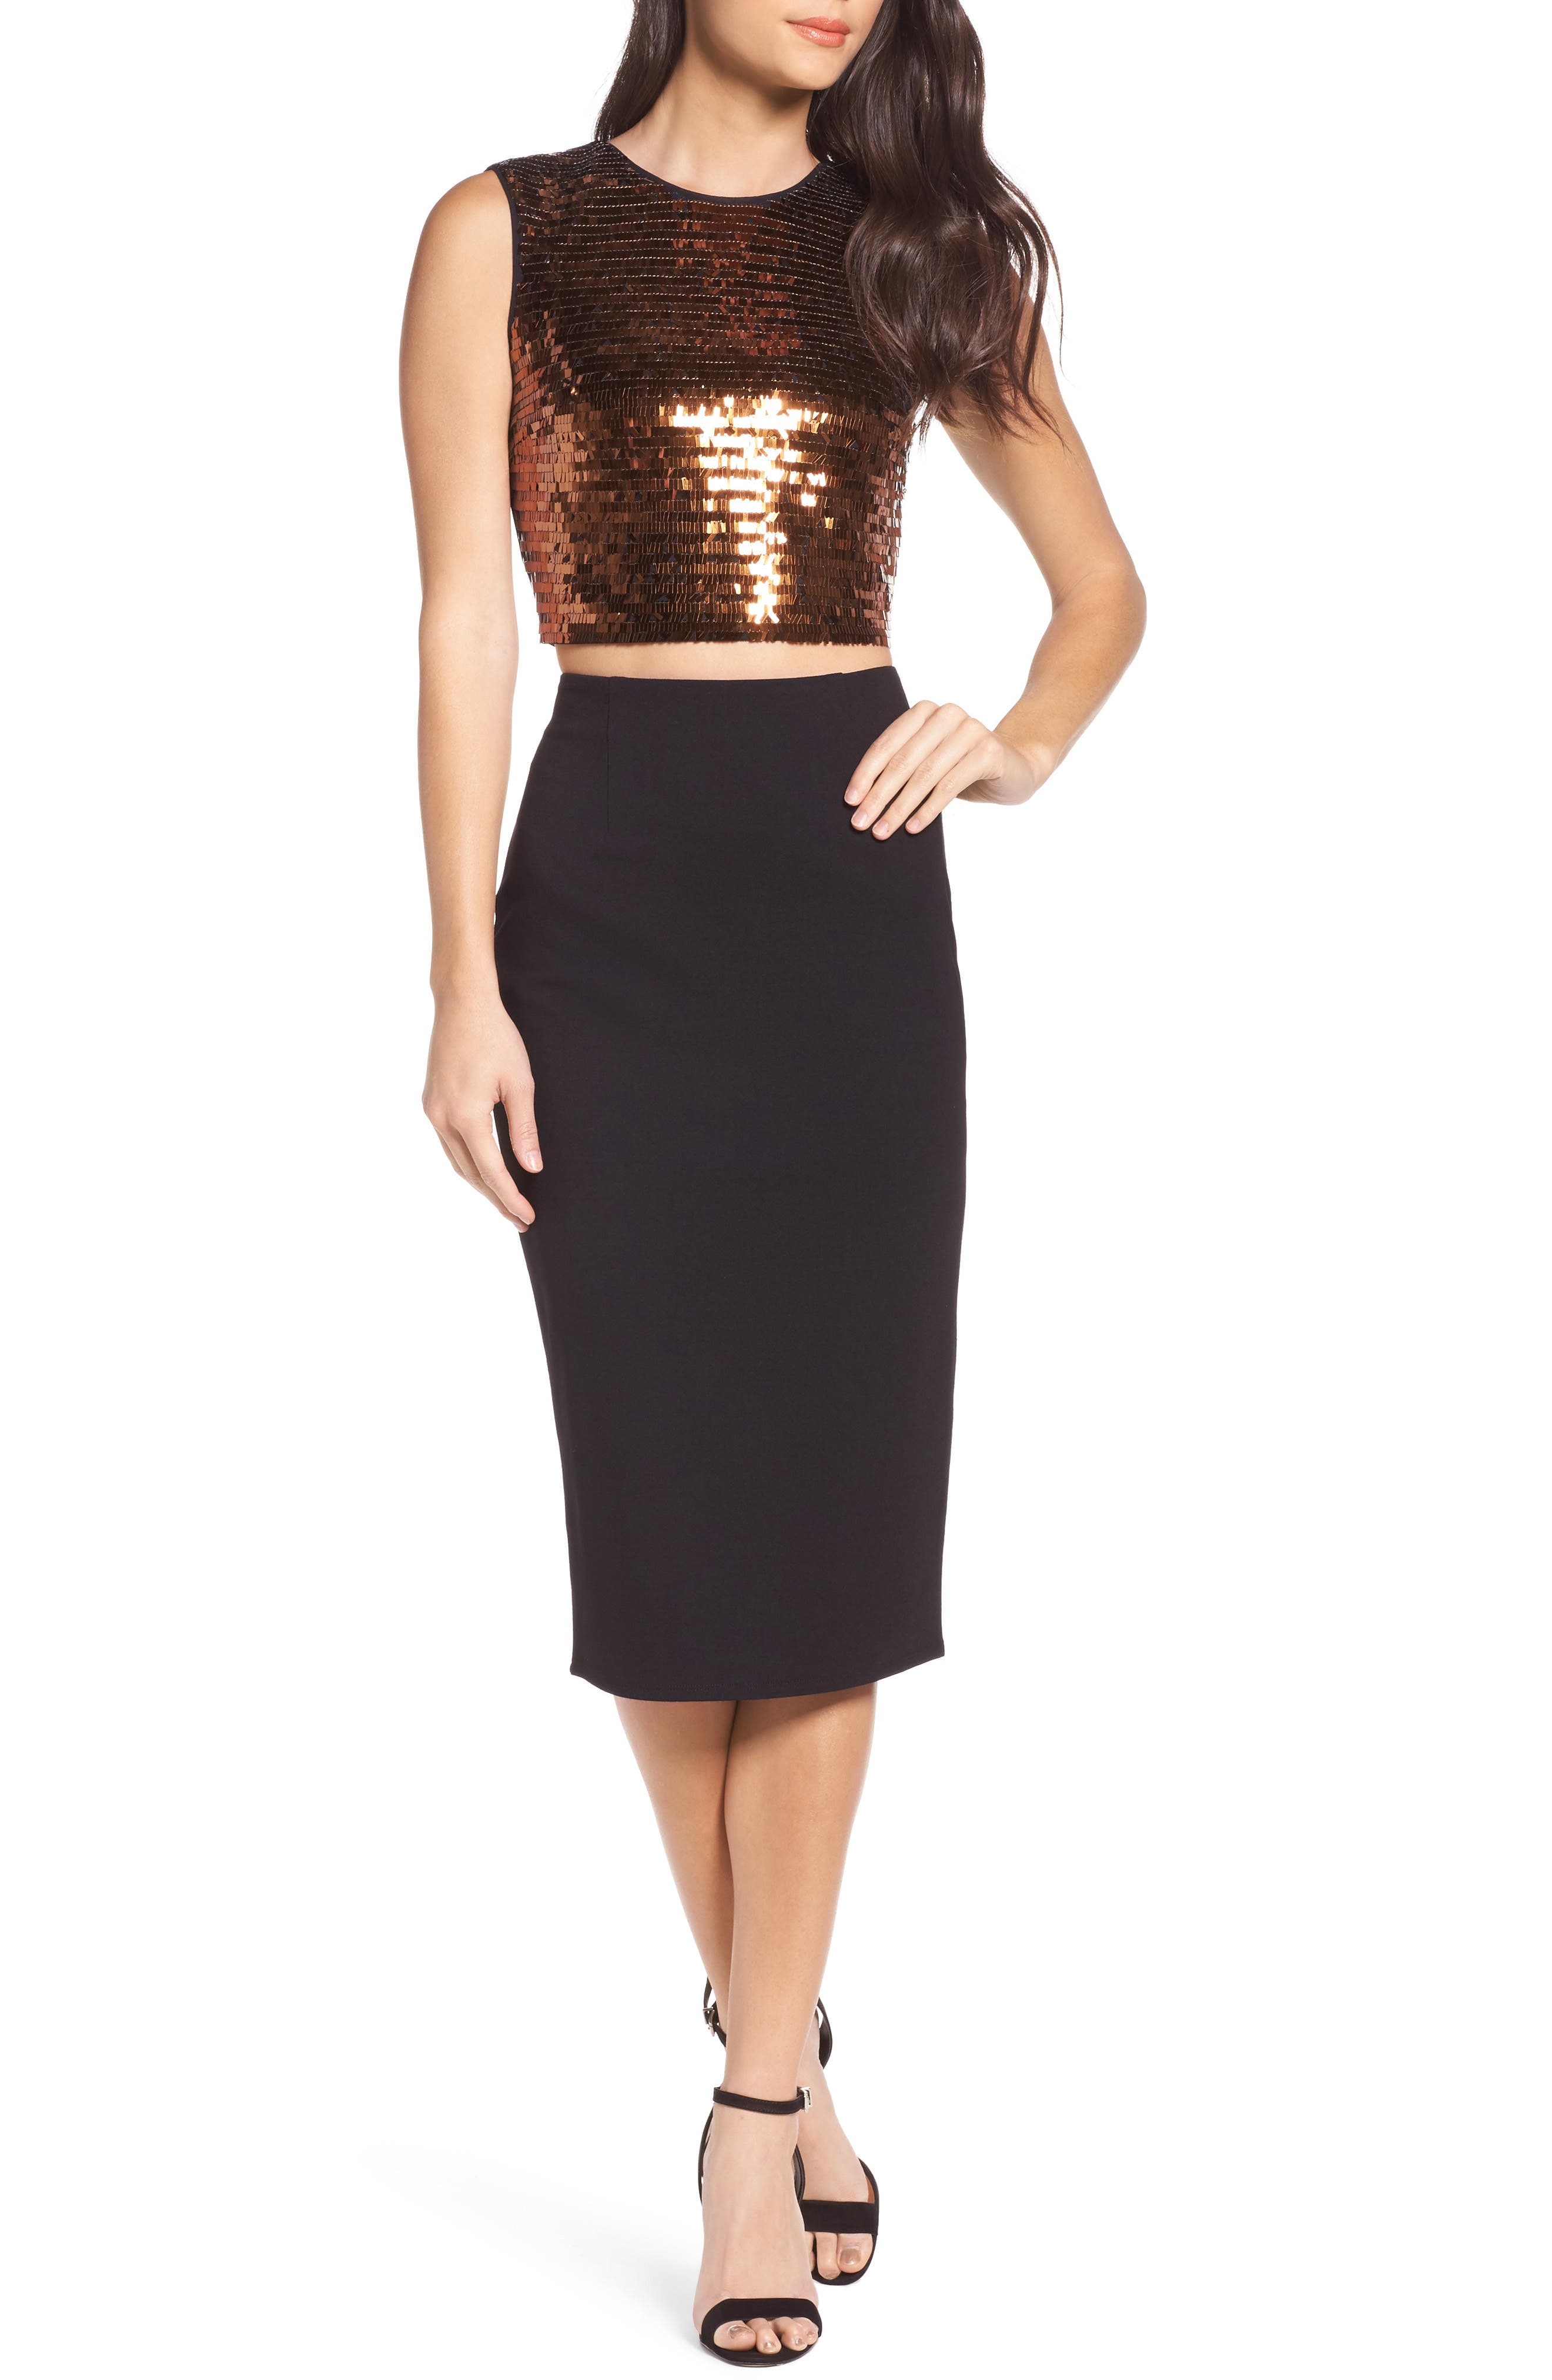 Disco Ball Two-Piece Dress,                             Main thumbnail 1, color,                             001